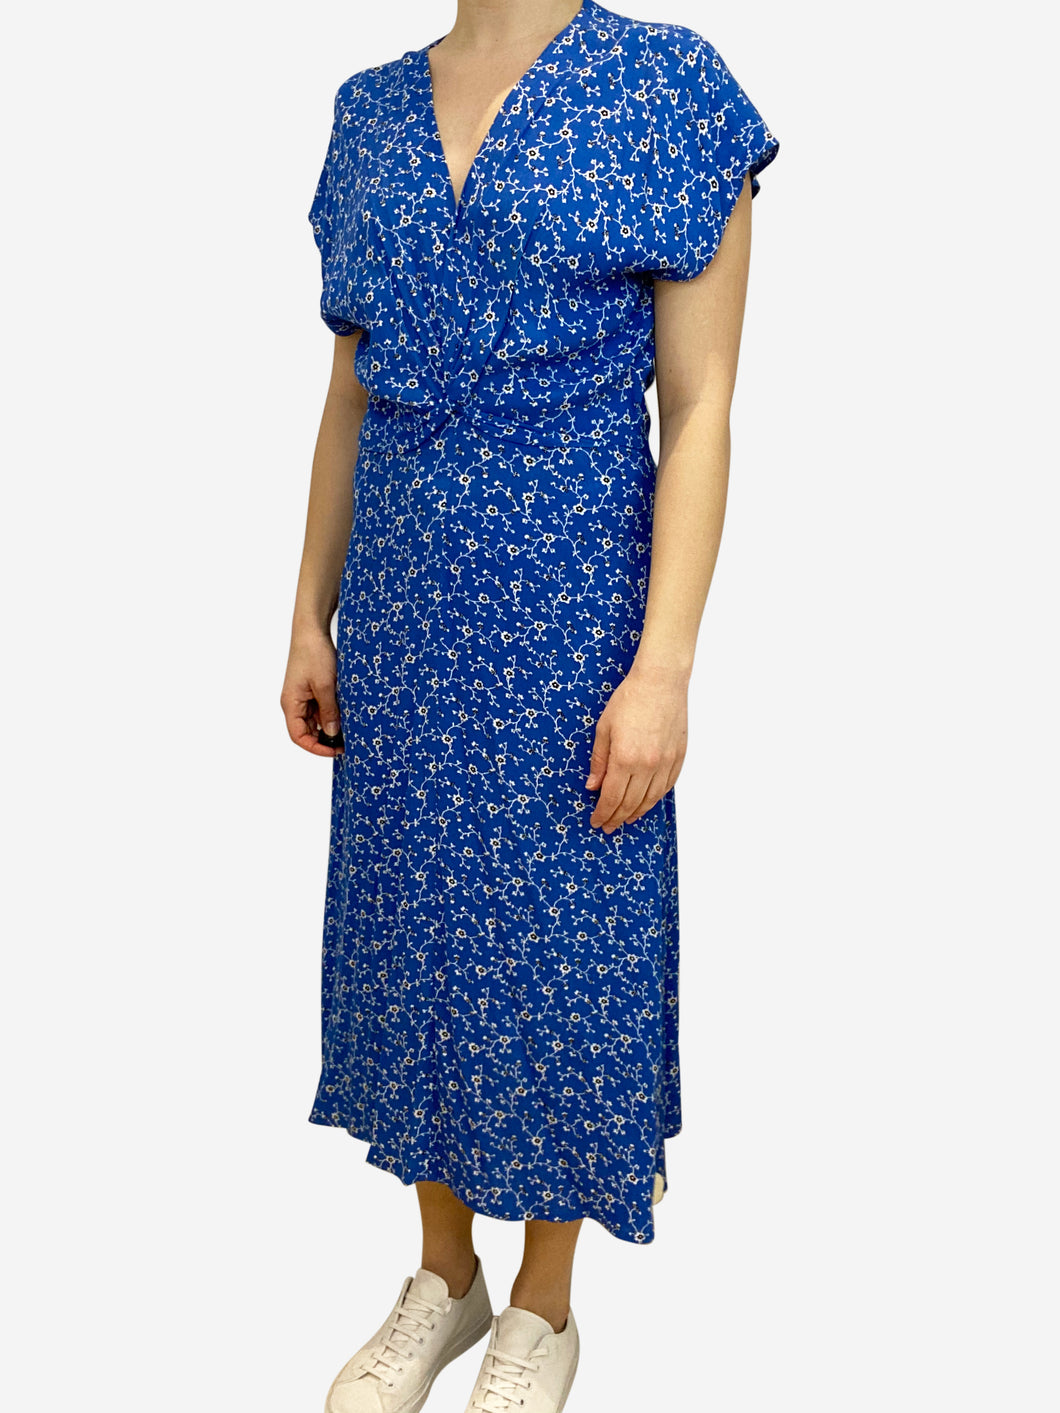 Blue floral print midi dress with knot tie front- size UK 10